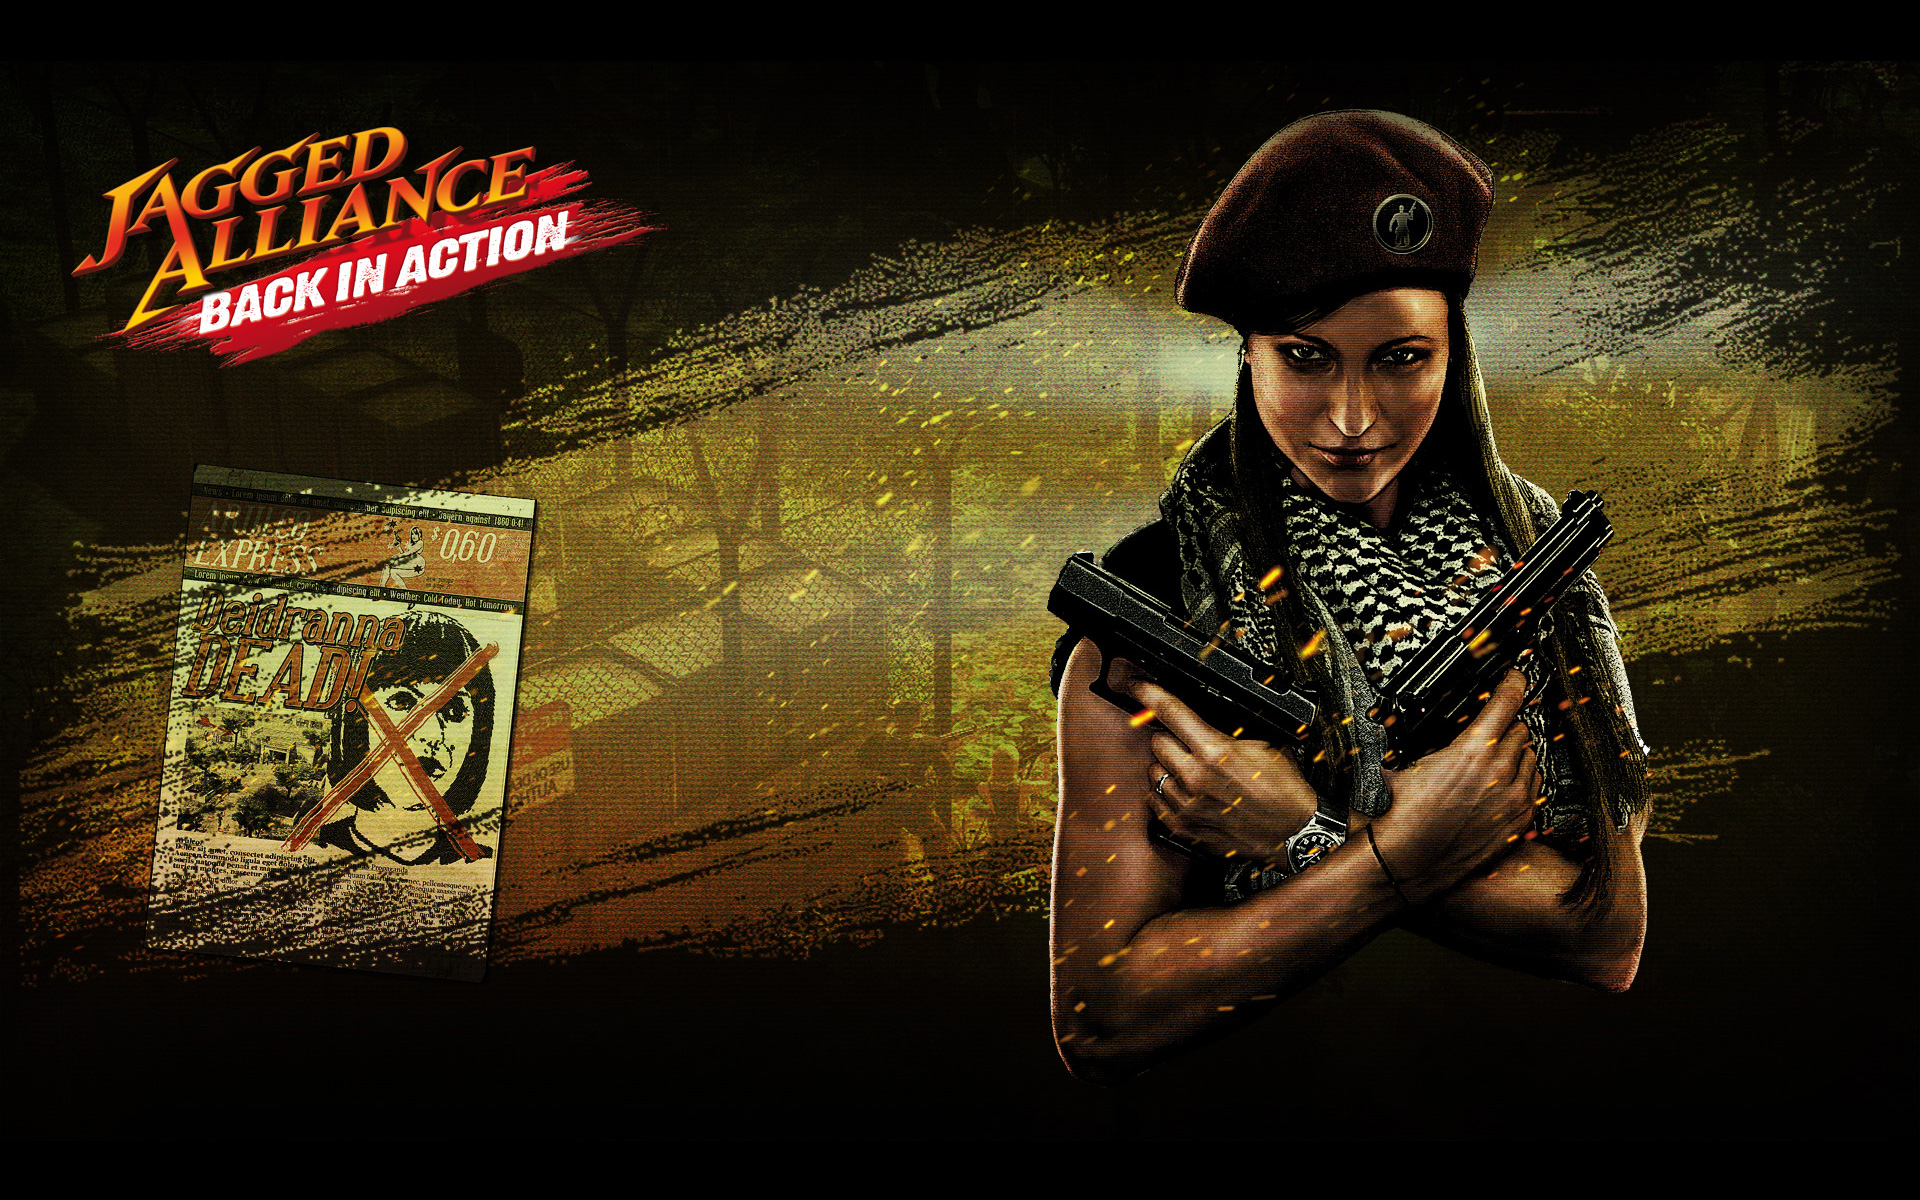 Free Jagged Alliance: Back in Action Wallpaper in 1920x1200